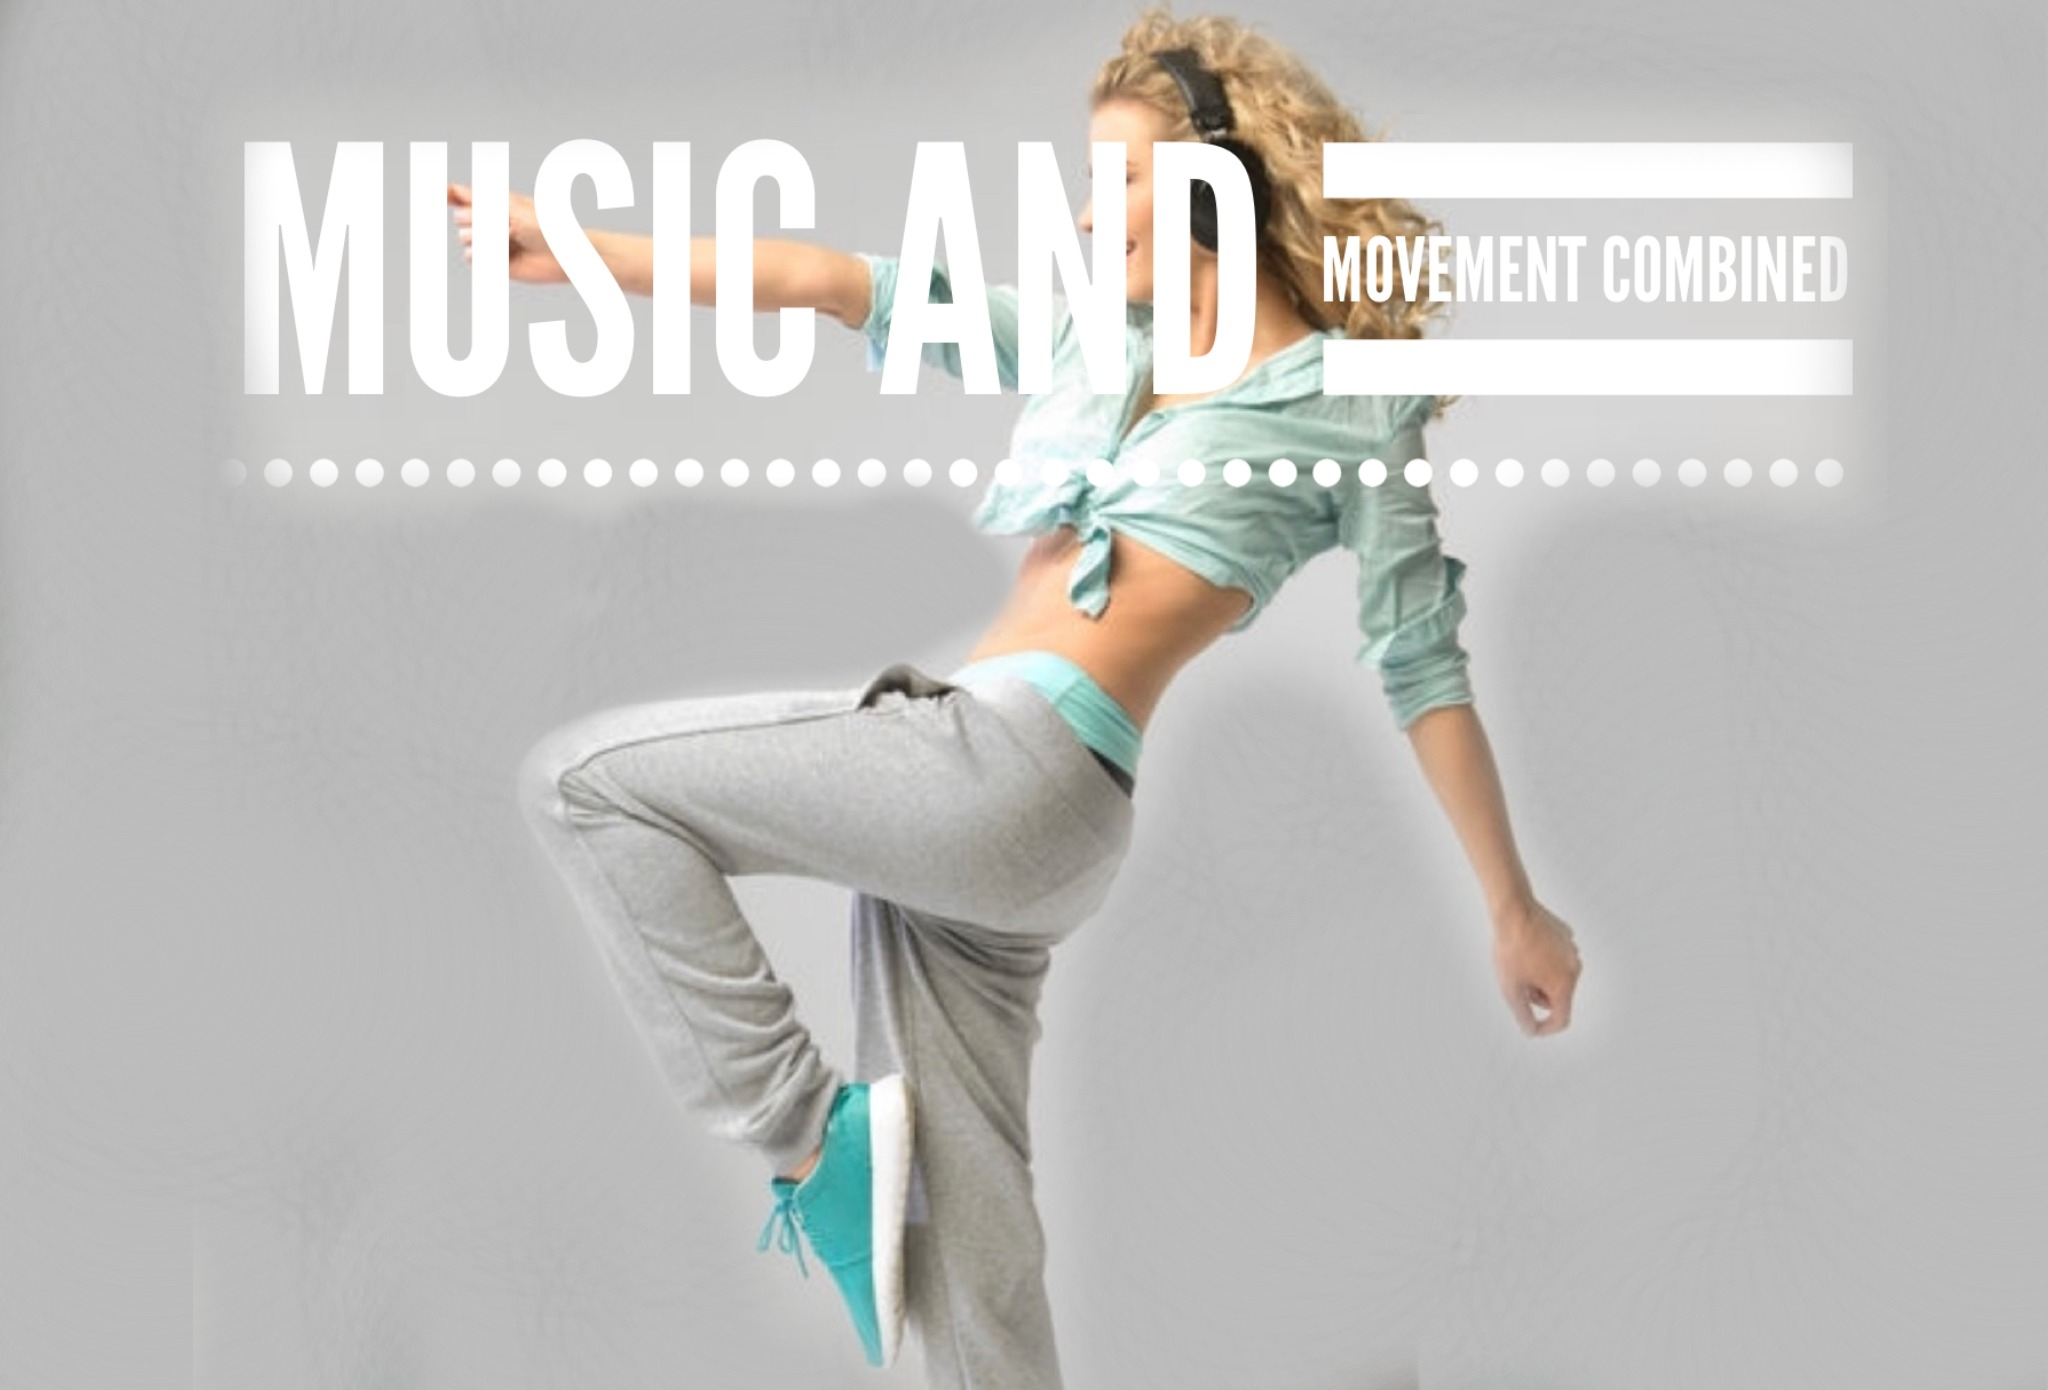 music-movement-studiomolly.jpg